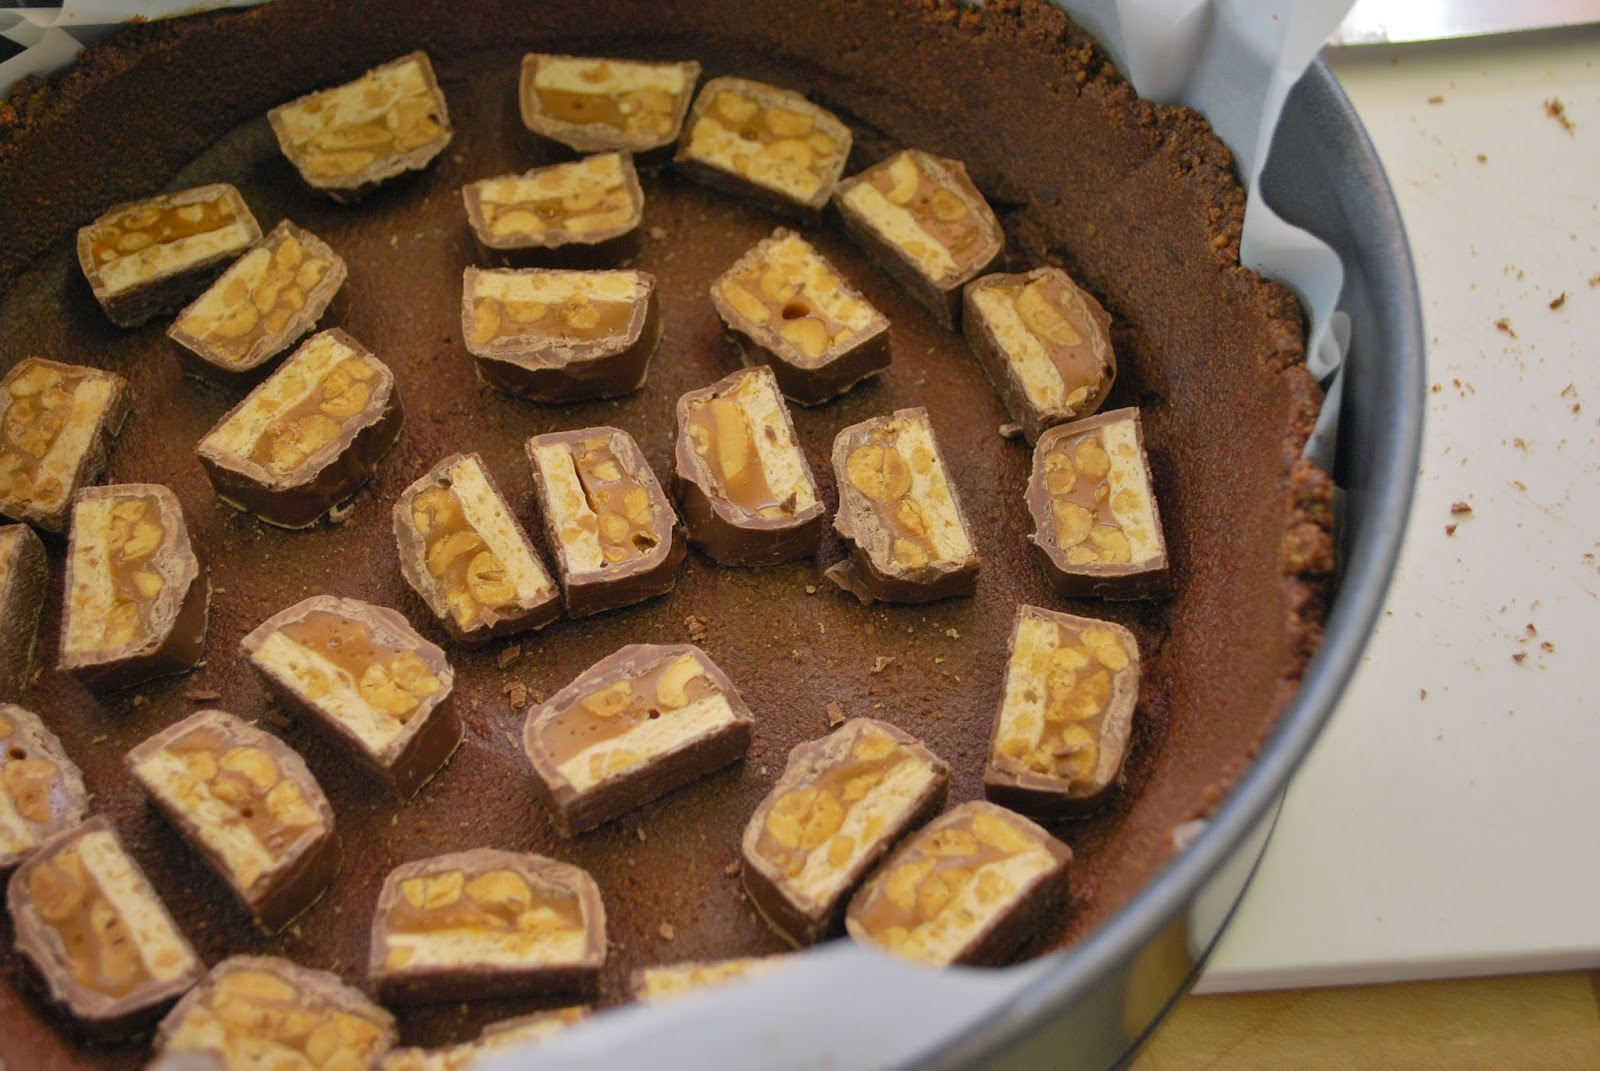 ... with the peanut butter cheesecake I was swimming in peanut brittle